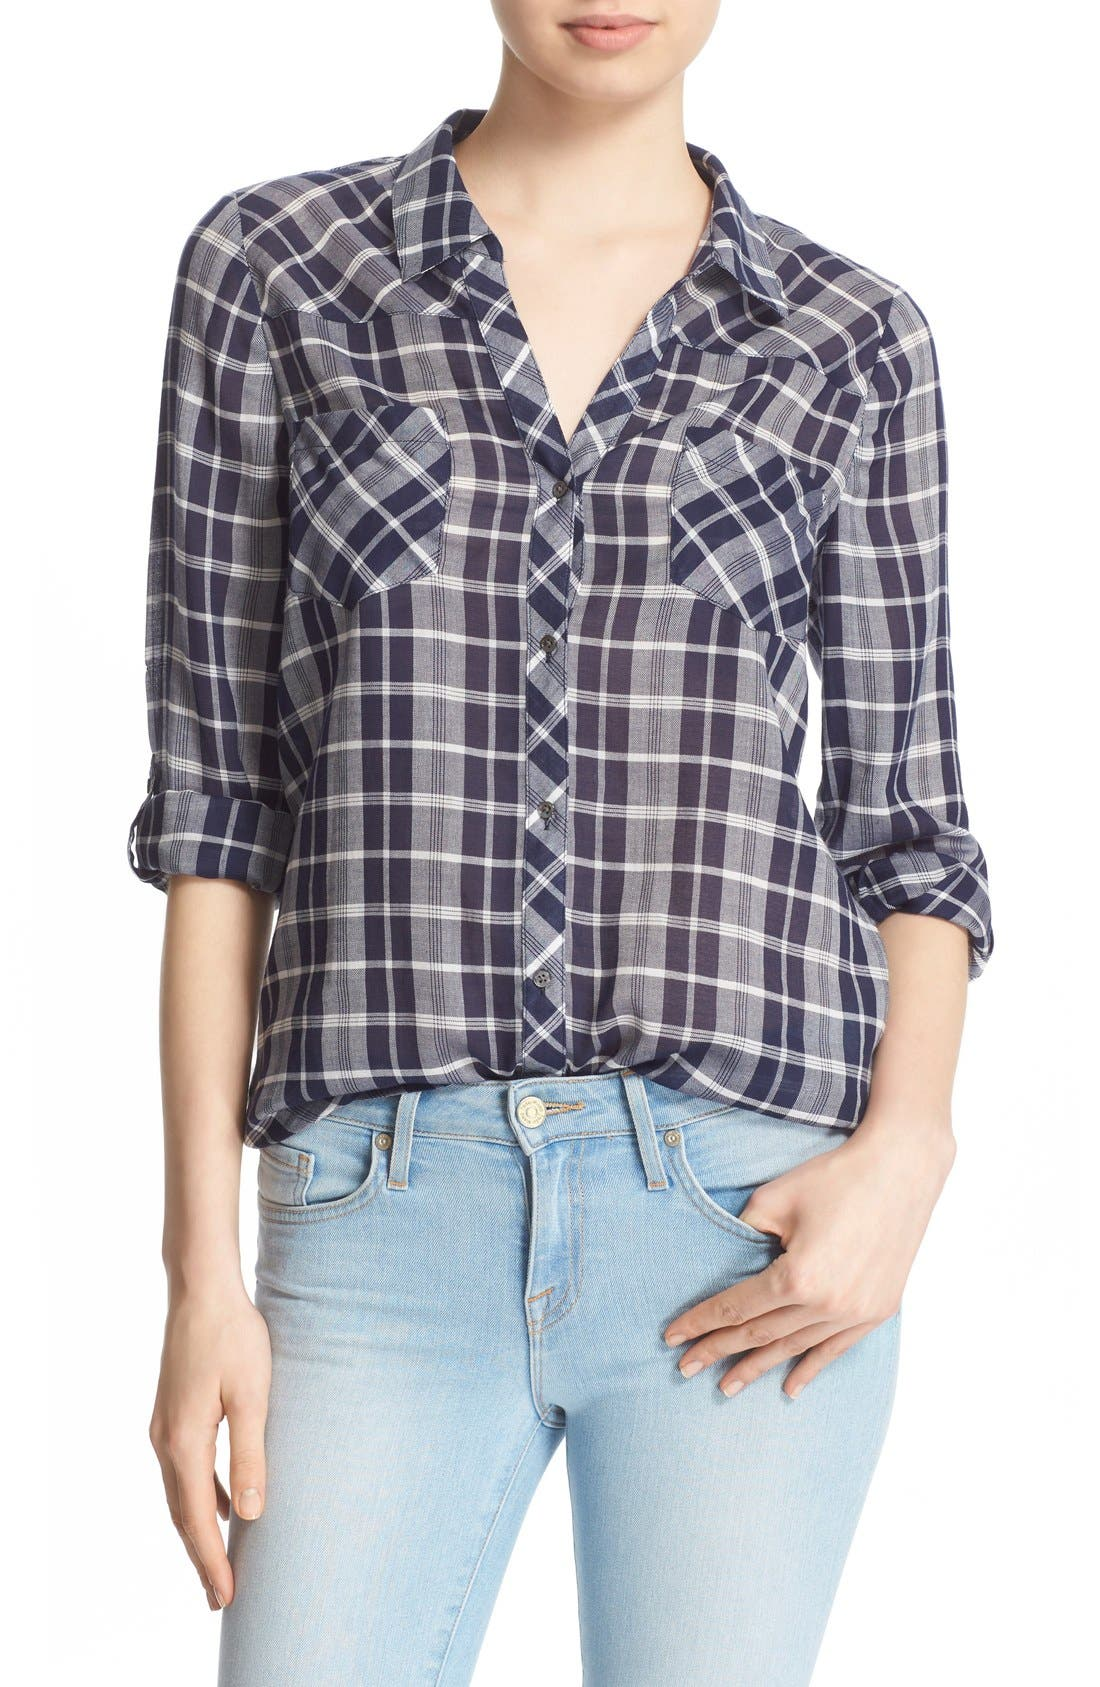 Main Image - Soft Joie 'Daesha' Plaid Shirt